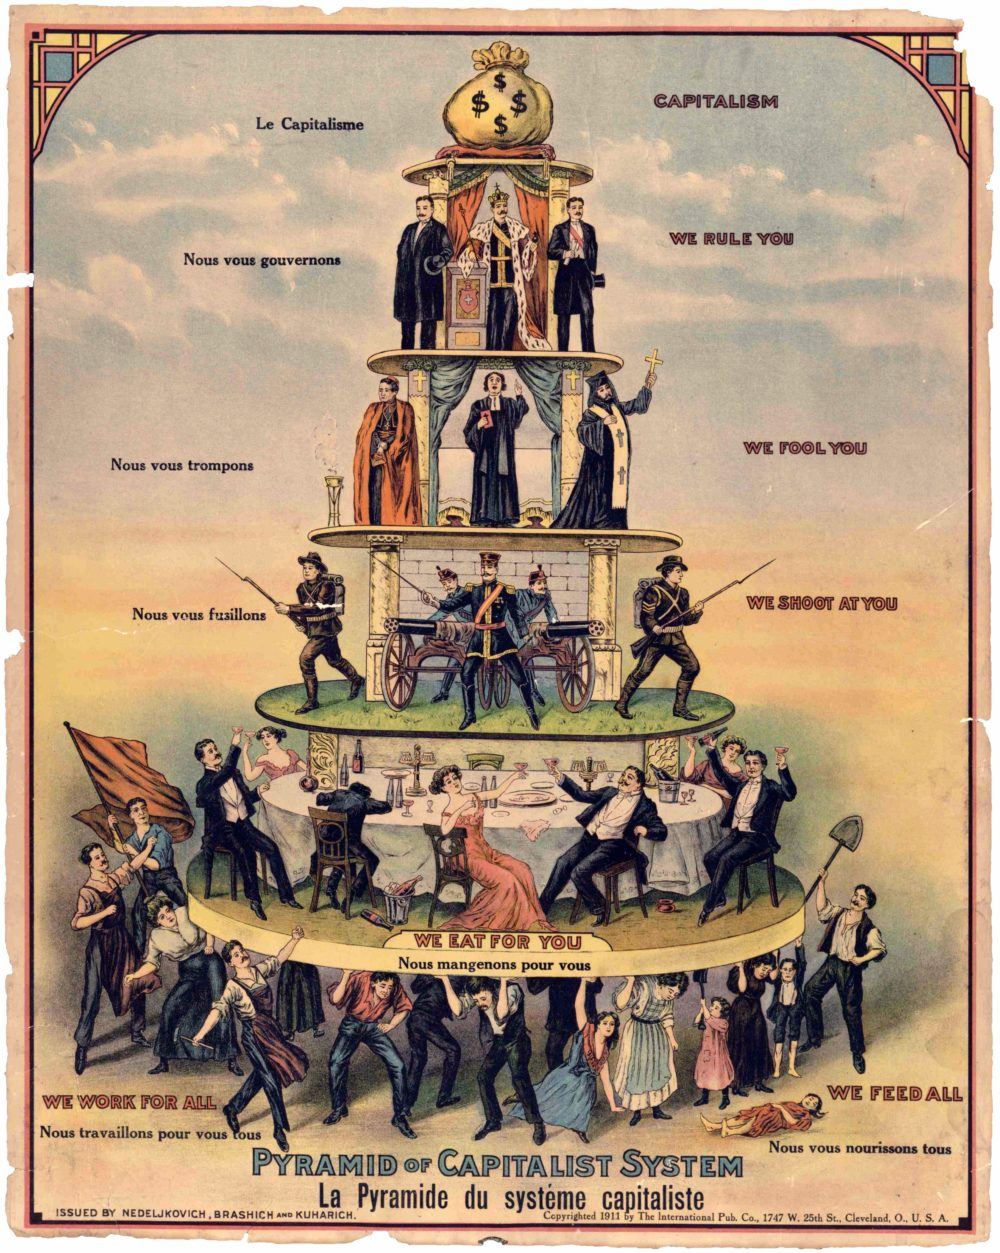 Pyramid of Capitalist System